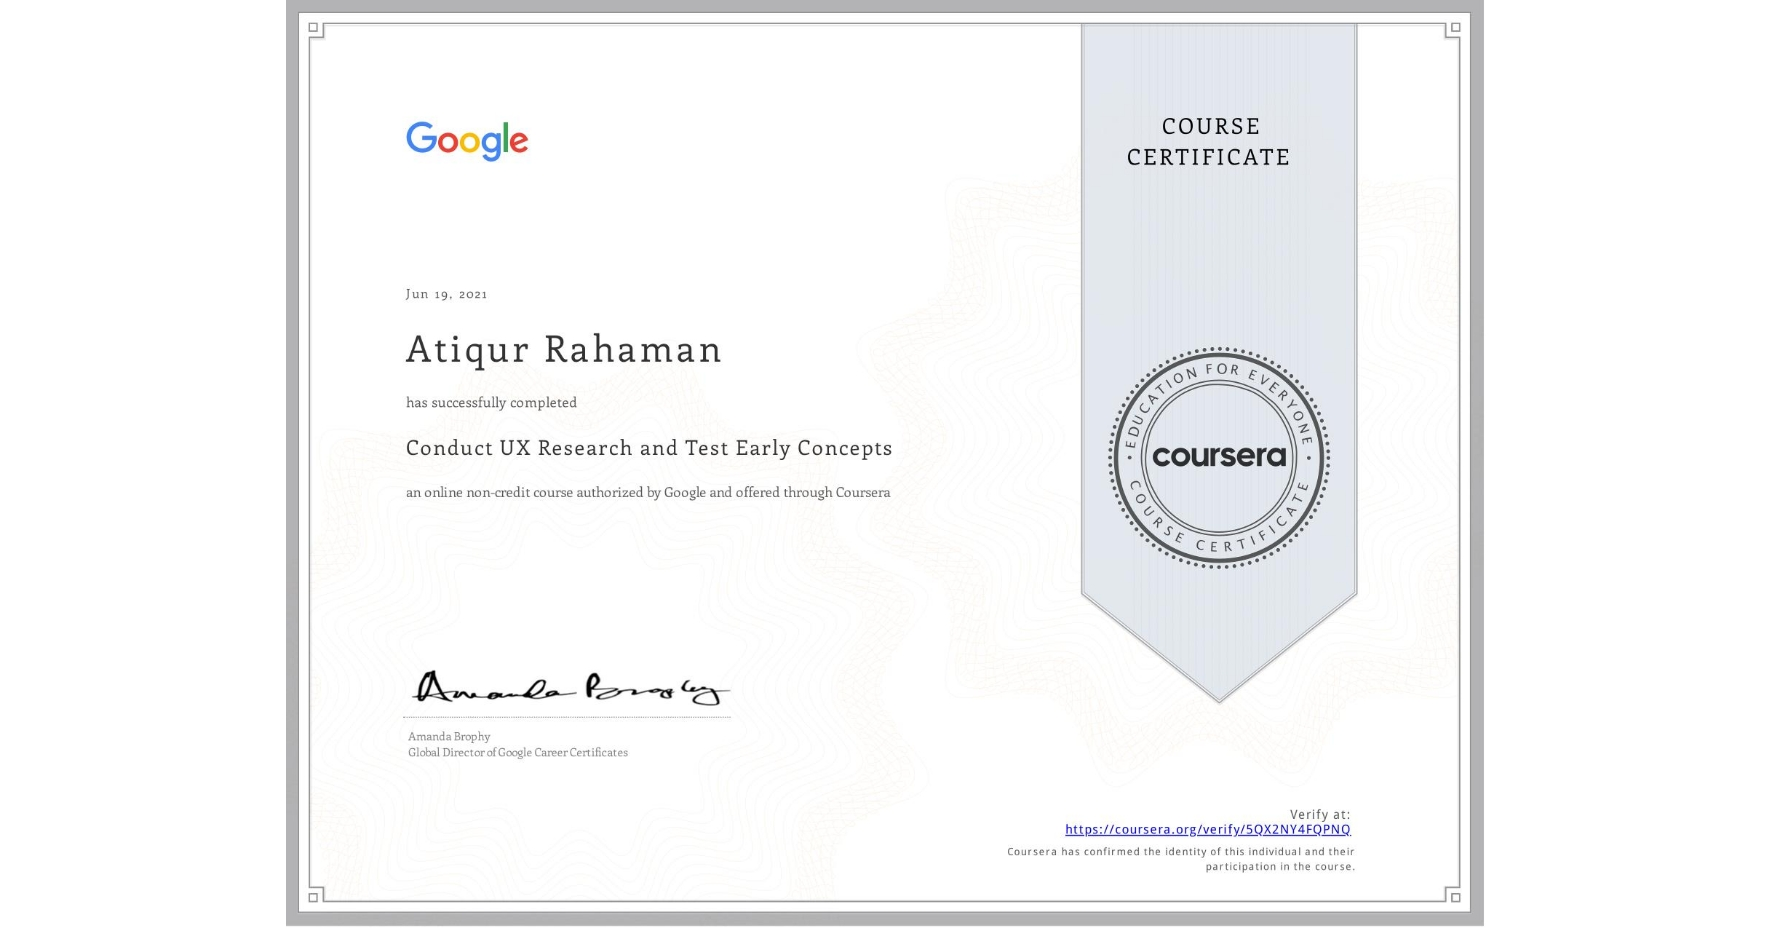 View certificate for Atiqur Rahaman, Conduct UX Research and Test Early Concepts, an online non-credit course authorized by Google and offered through Coursera